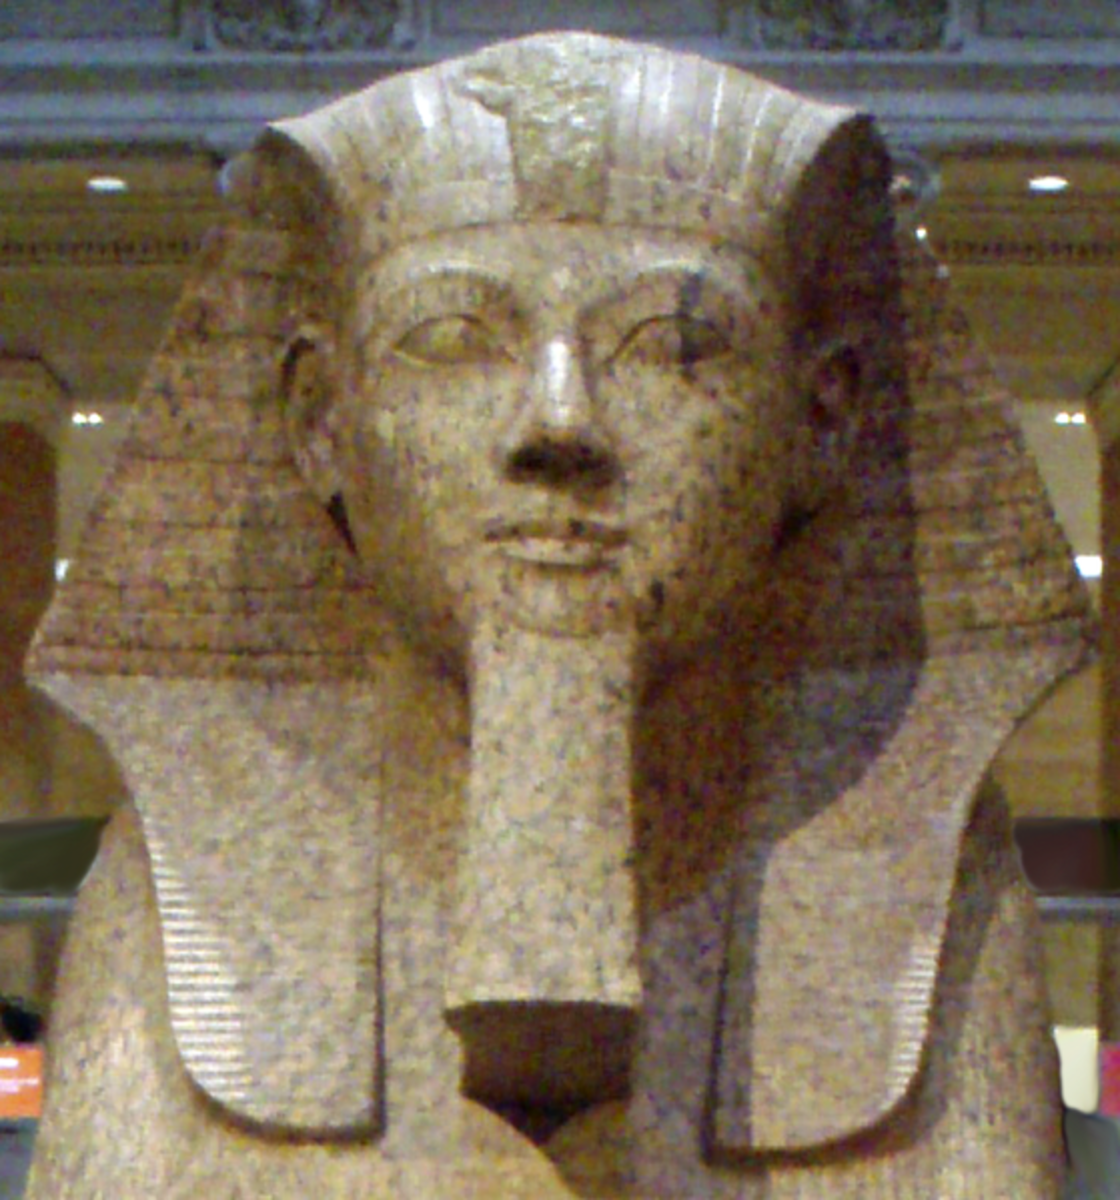 Large granite sphinx bearing the likeness of the female pharaoh Hatshepsut. Keith Schengili-Roberts CC-BY-SA-2.5